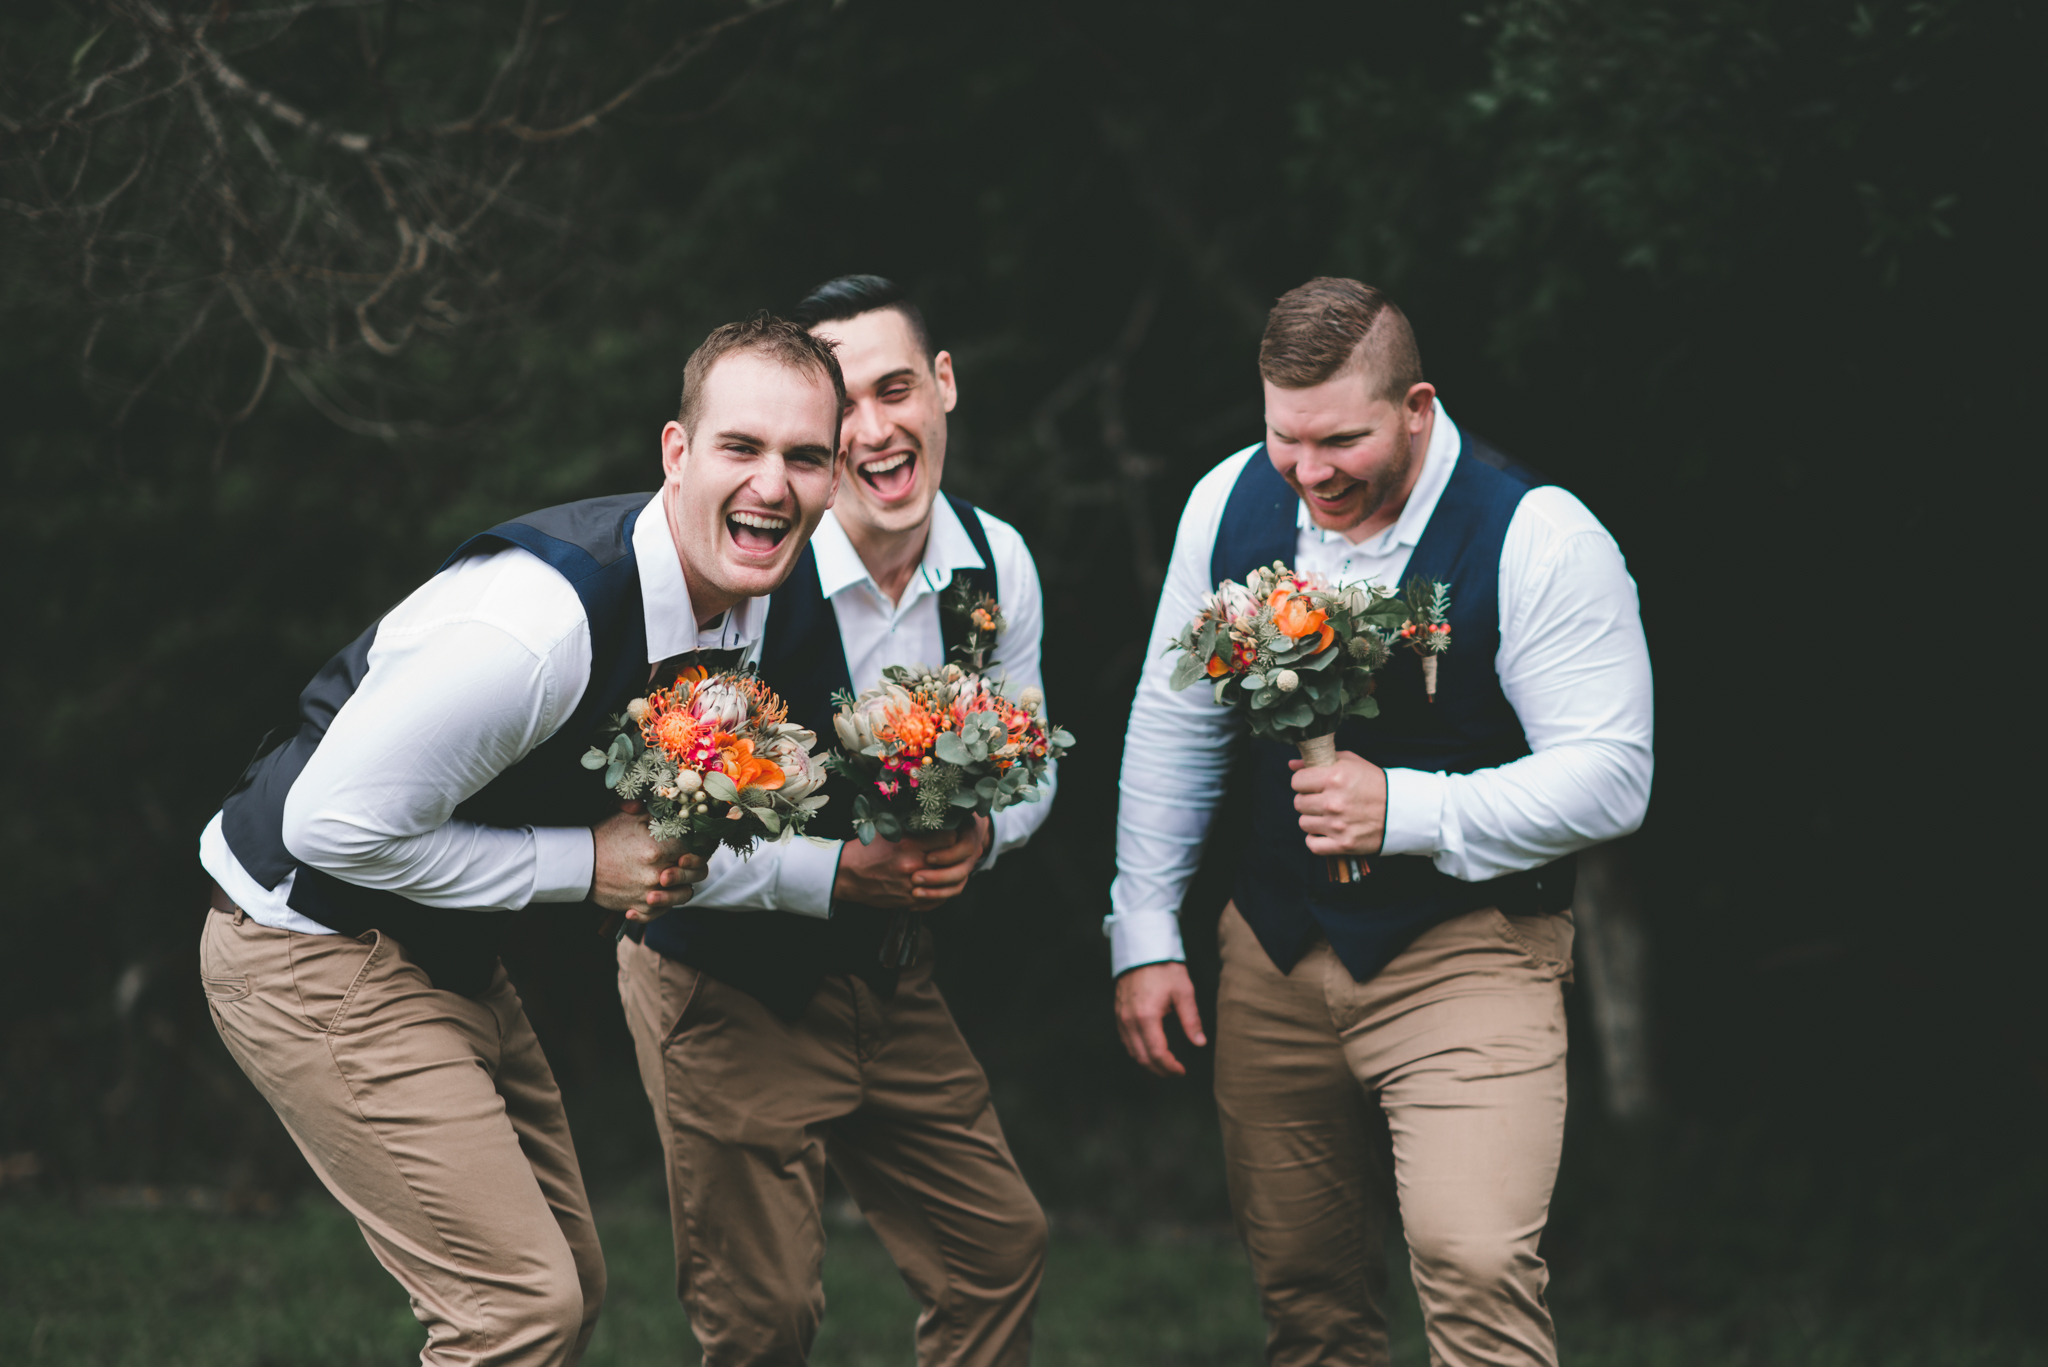 Native bouquets – groomsmen, faux flowers image by  LOVELENSCAPES WEDDING PHOTOGRAPHY – BROCKHURST FARM WEDDING #bloominglovelybouquets